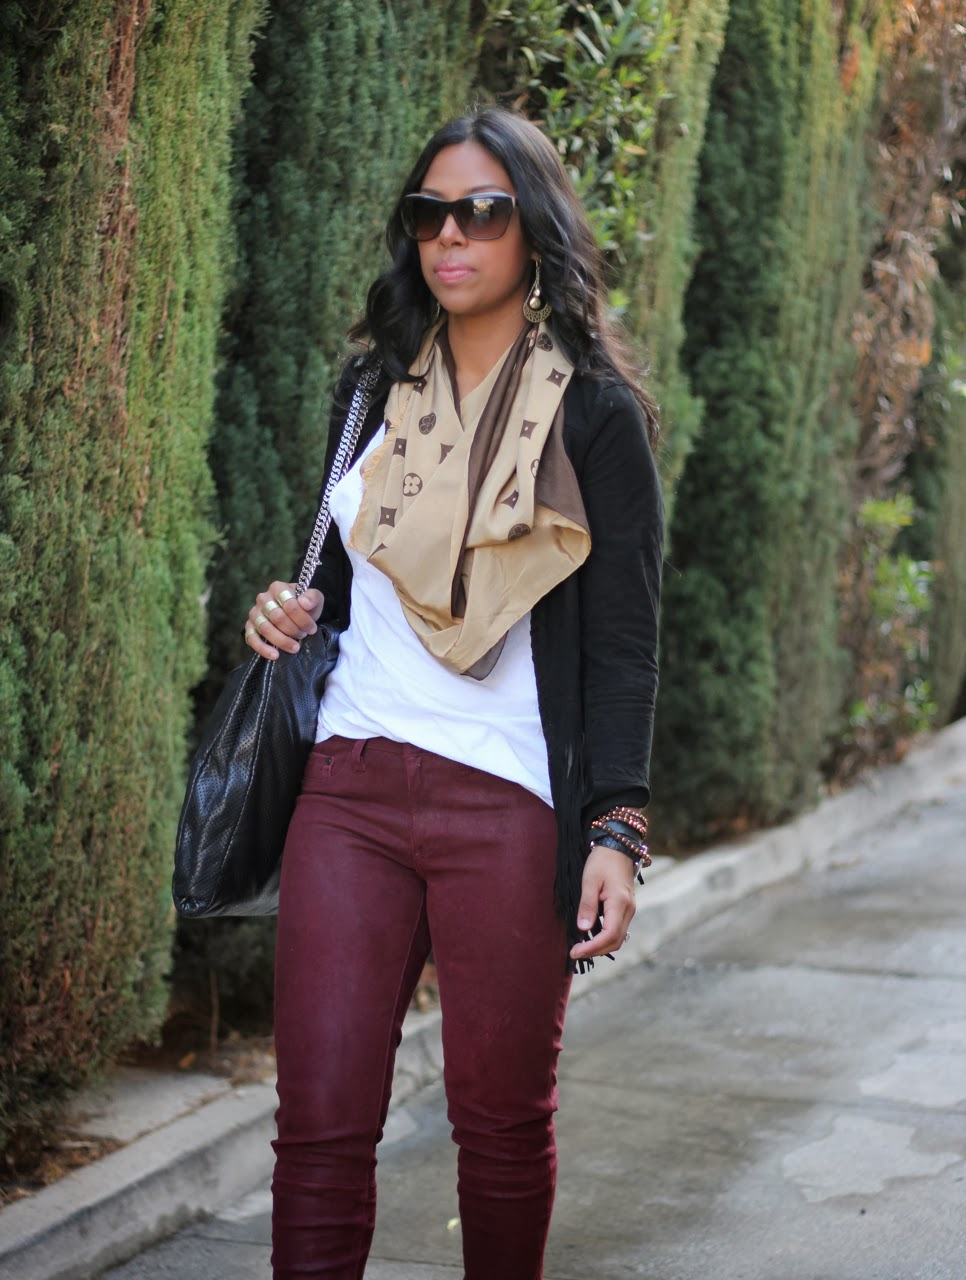 zara rag and bone leather pants oxblood chanel bag sunglasses louis vuitton scarf suede fringe jacket